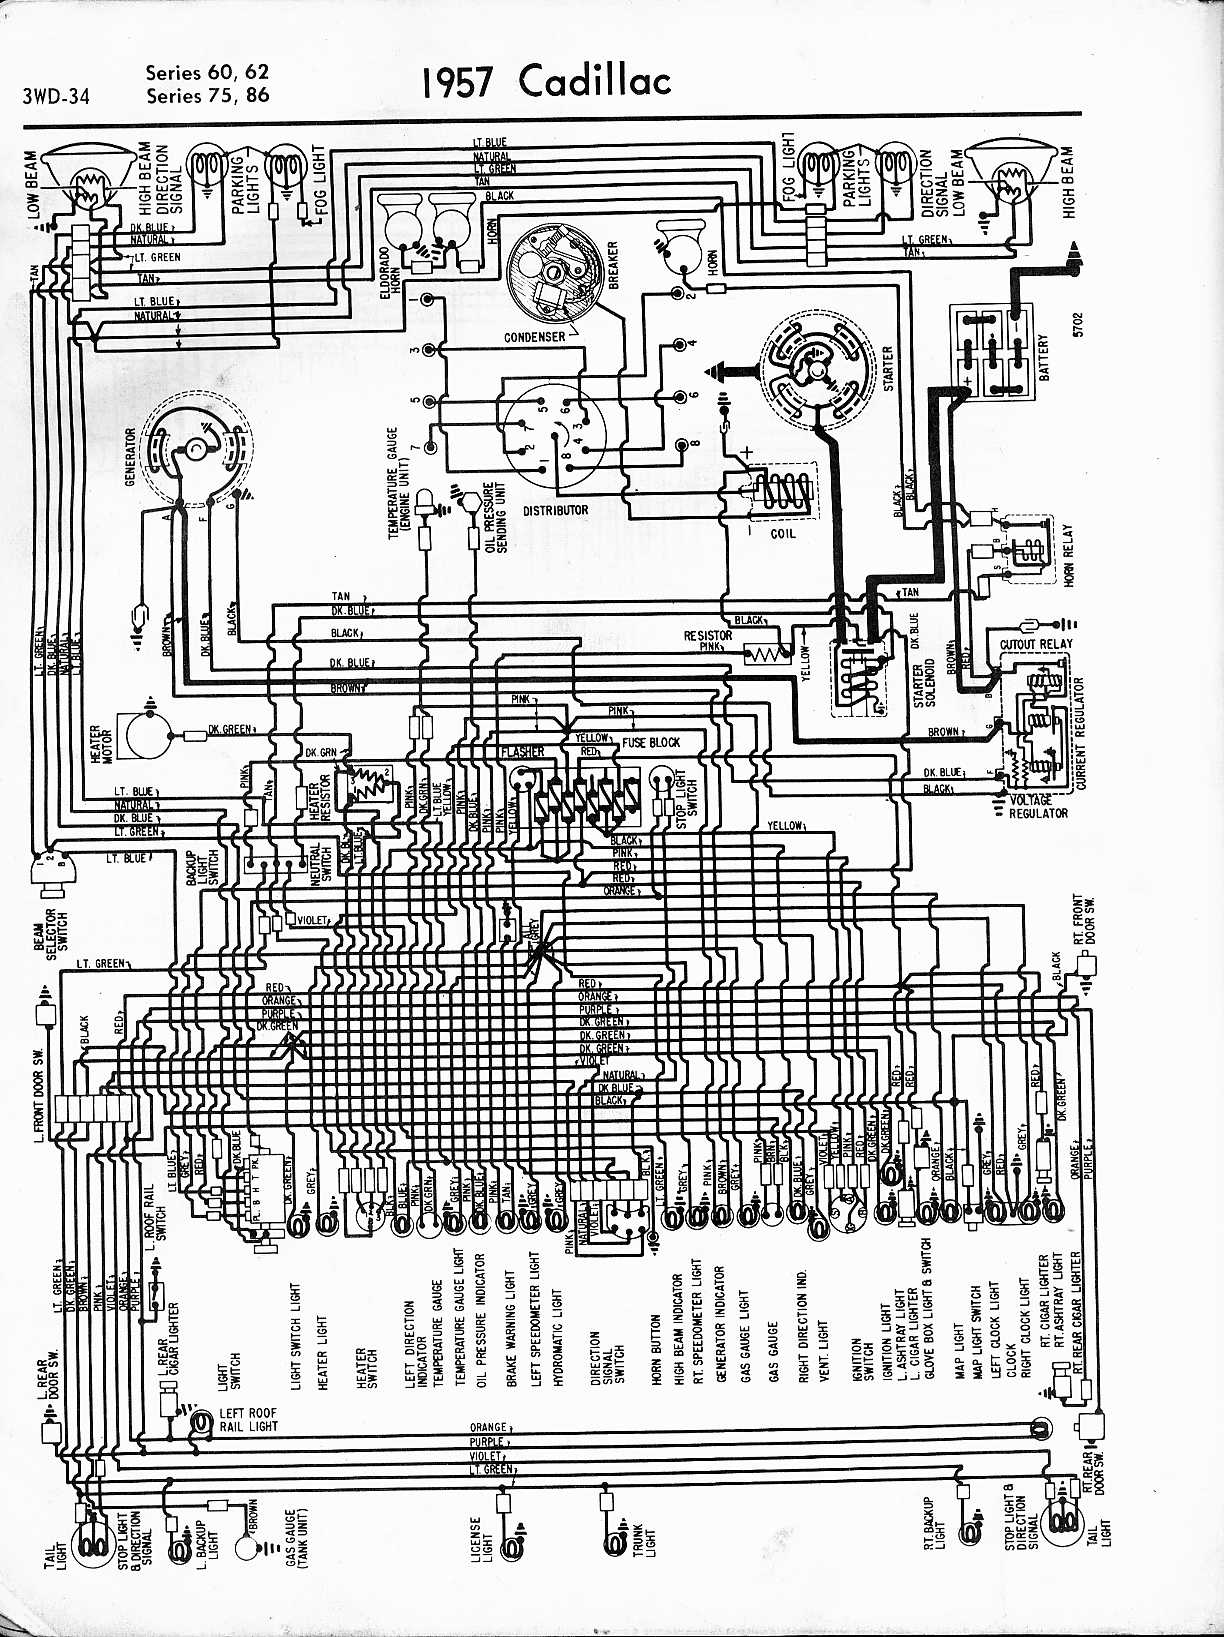 diagram] 1998 cadillac wiring diagram full version hd quality wiring diagram  - thedatabasedyou.terroir-didounath.fr  terroir-didounath